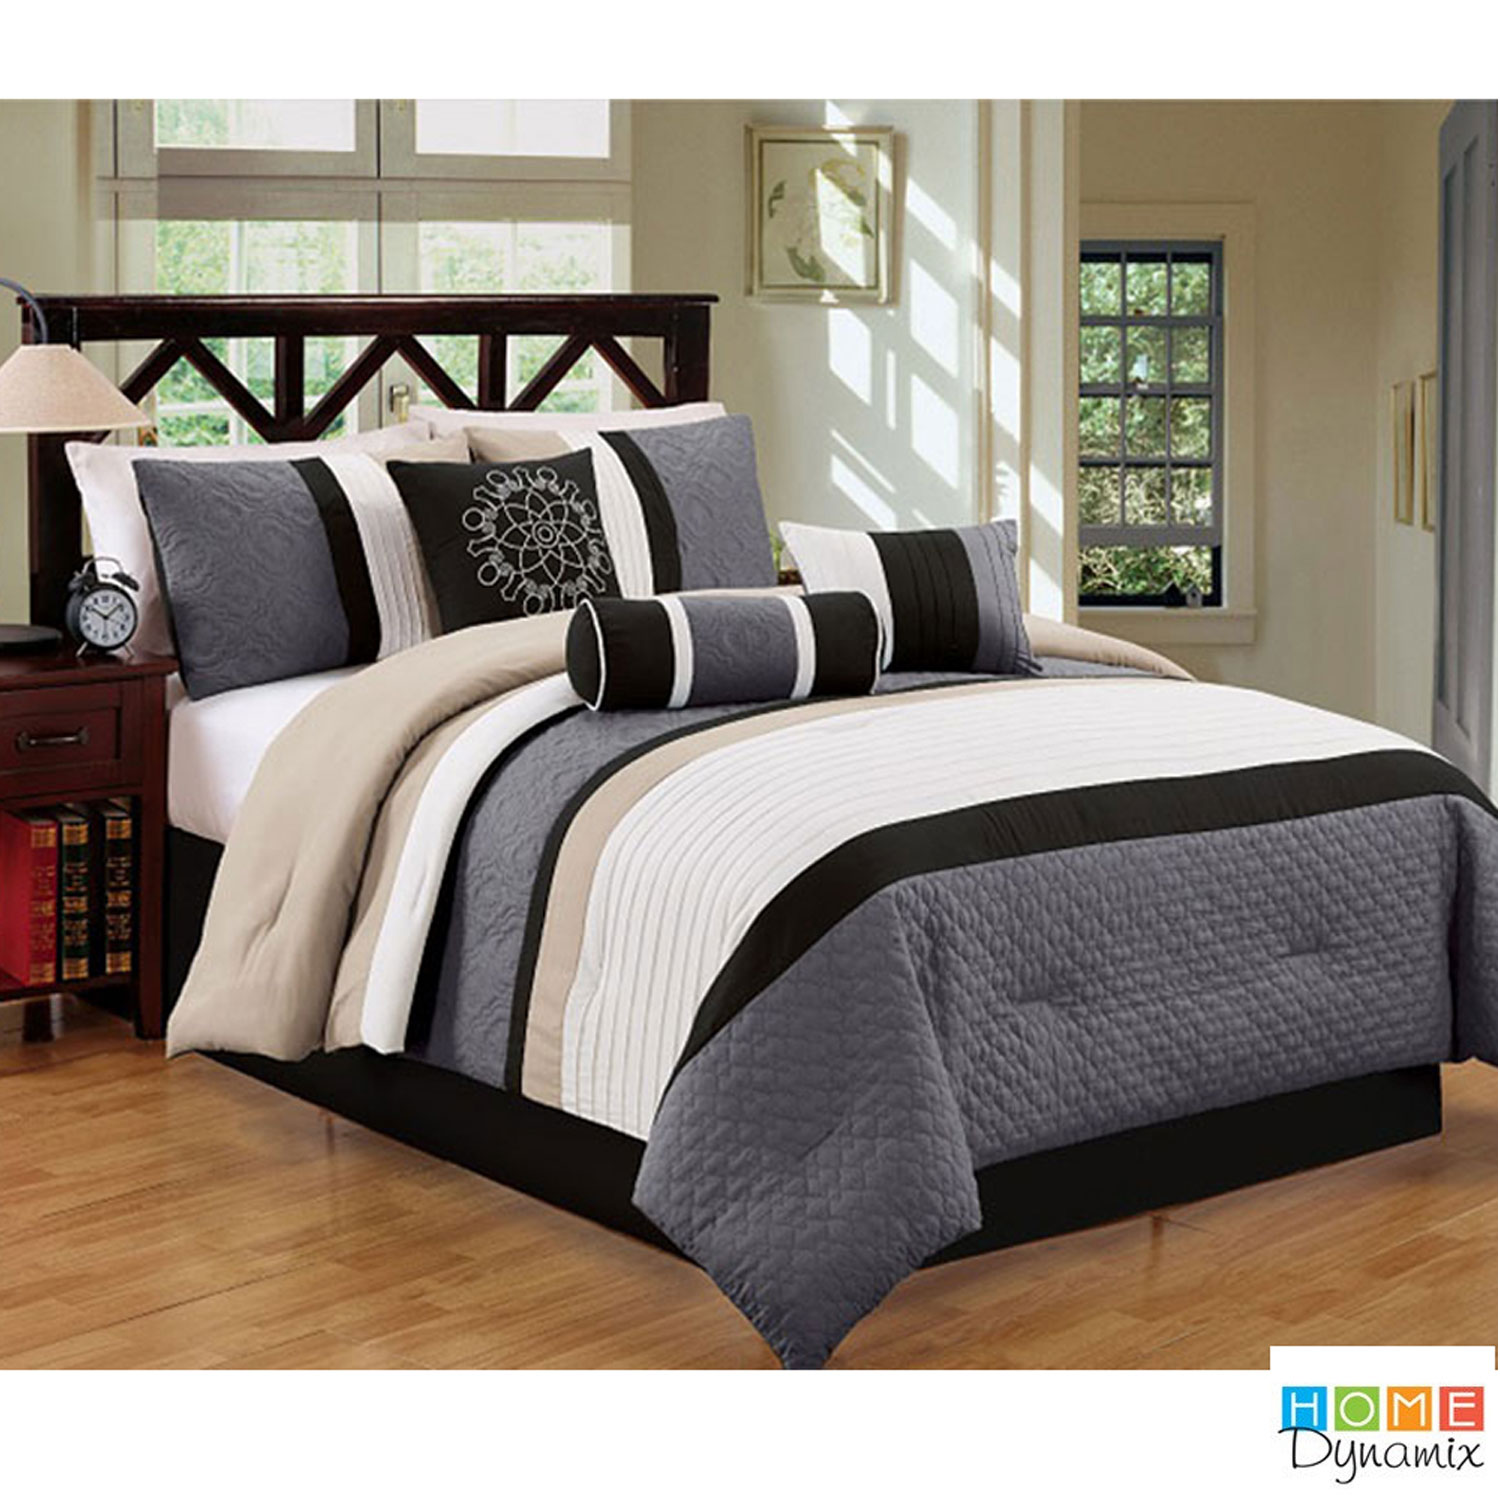 7-Piece Set: Evolution Fancy Oversize Overfilled Comforter Collection